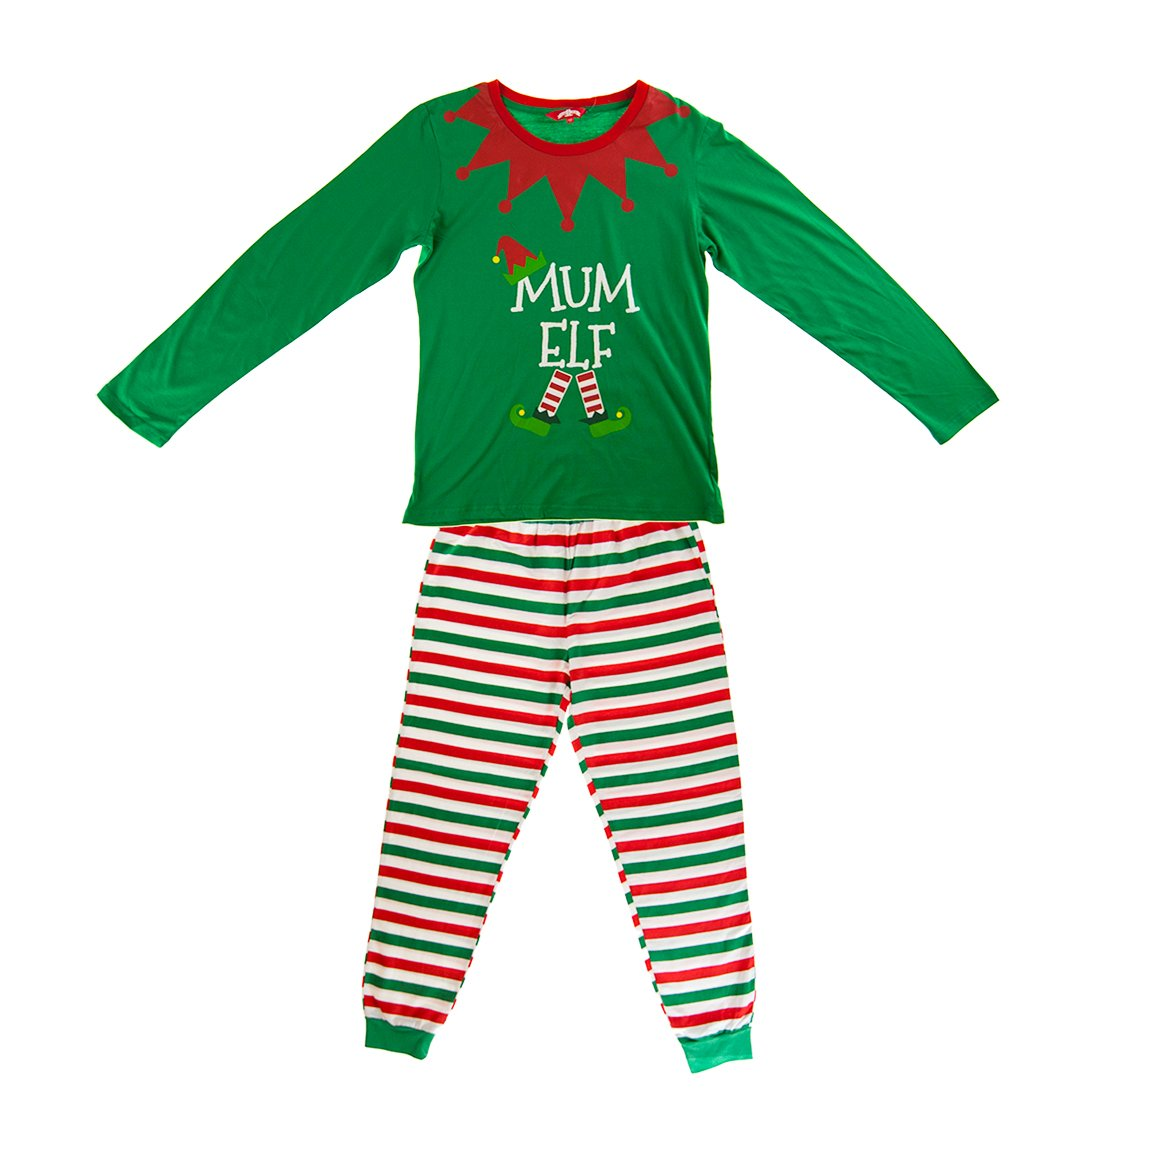 32a2295a57 Made By Elves Elf Pyjamas Christmas Family PJs - Dad